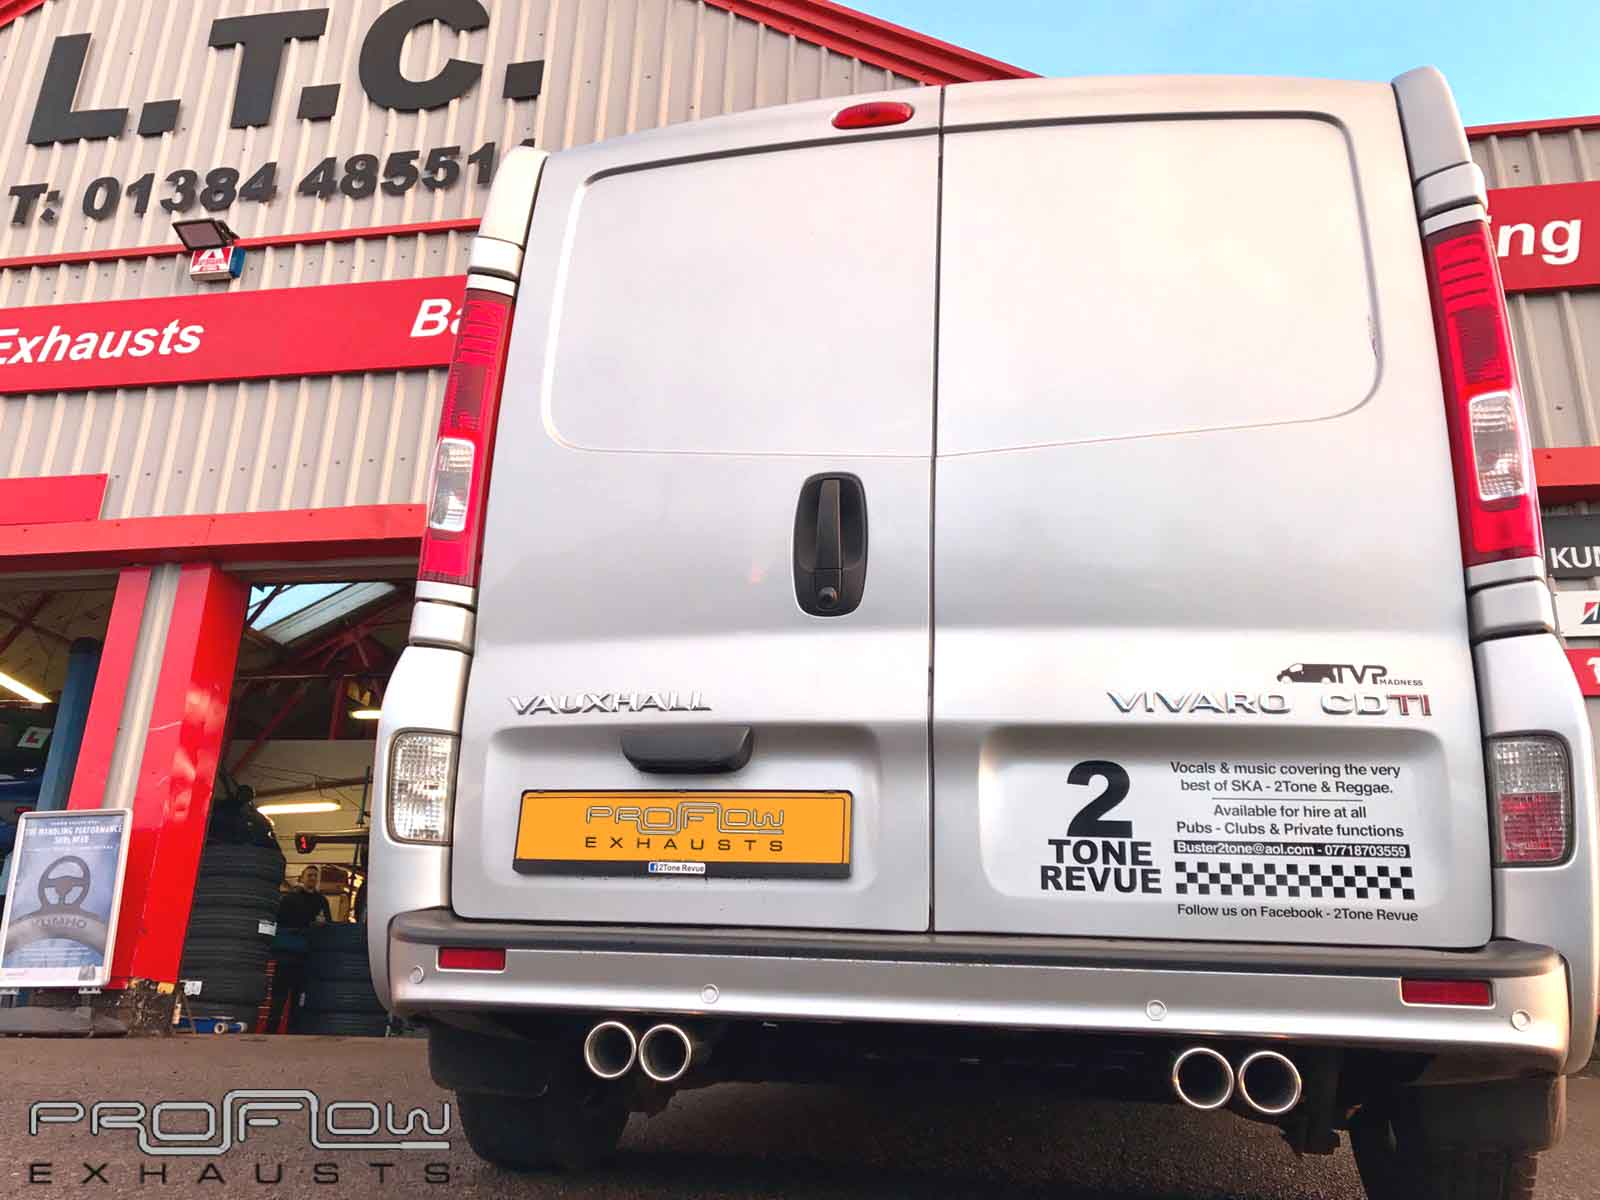 Vauxhall Vivro Fitted With Proflow Exhausts Stainless Steel Pipe Work Dual Twin Exhaust Tailpipes (1)